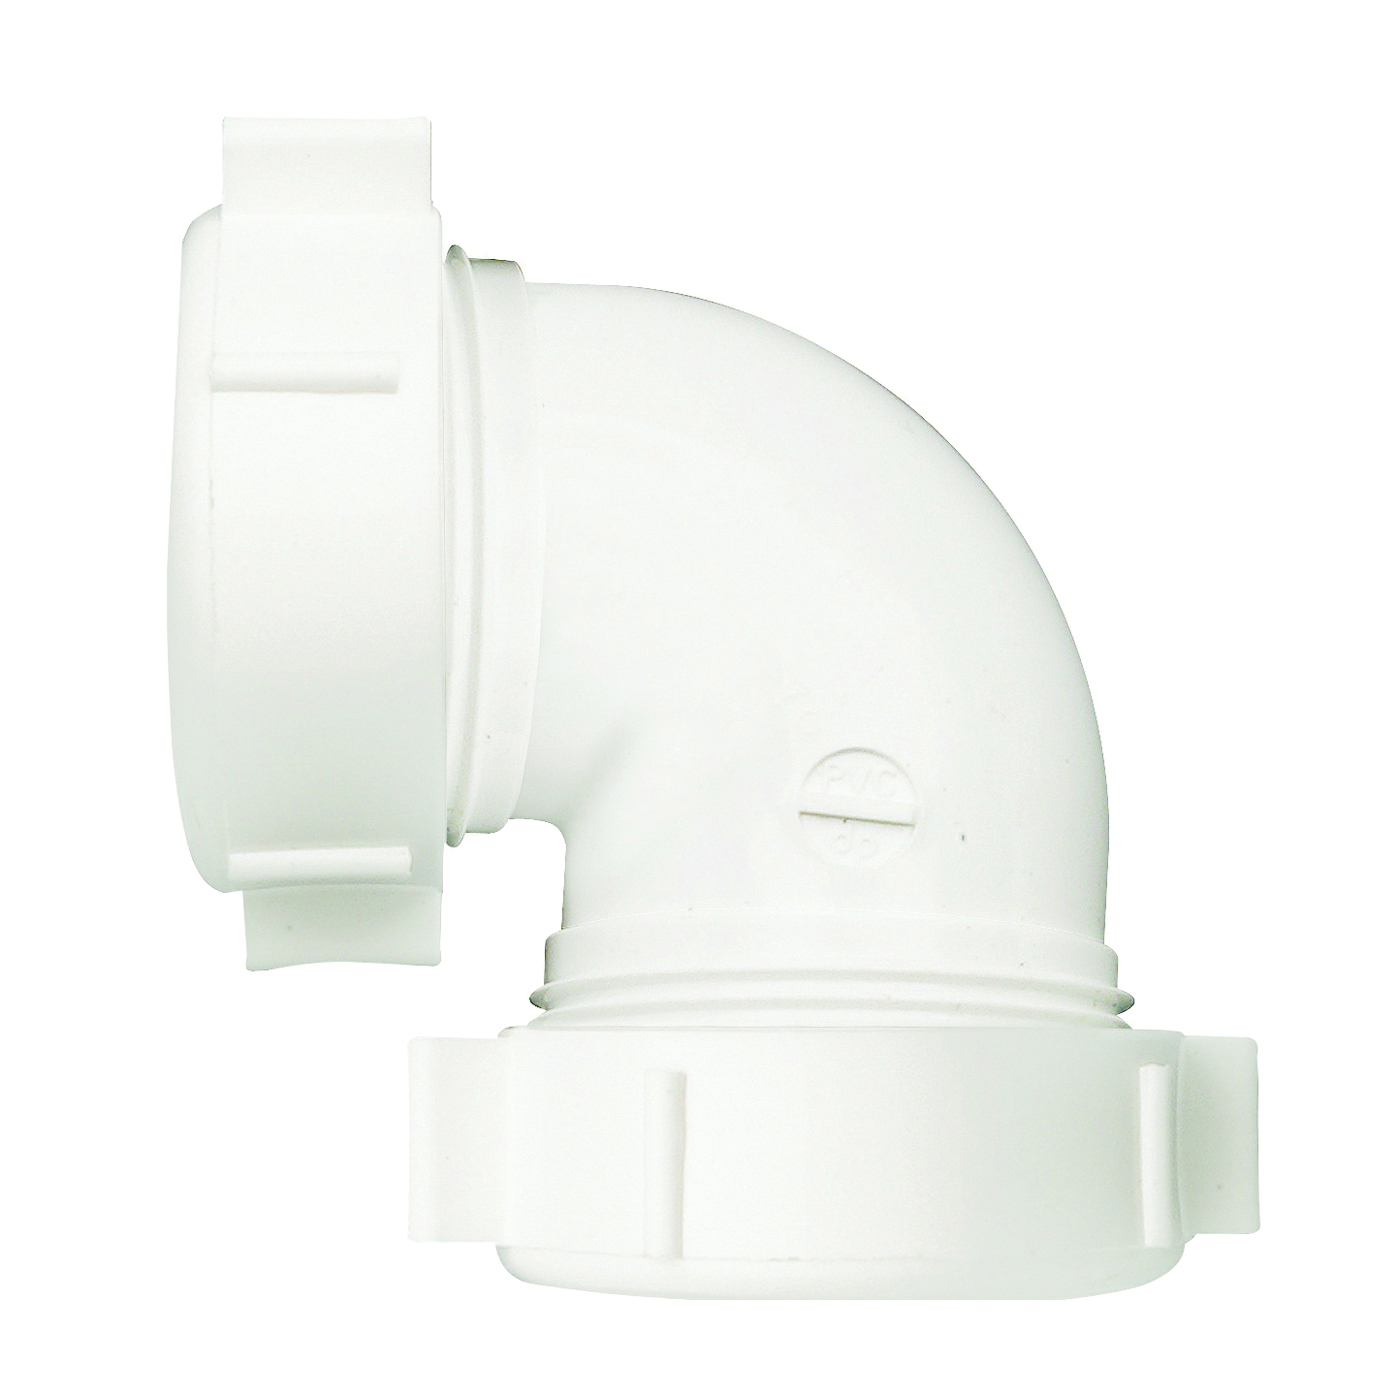 Picture of Plumb Pak PP55-5W Drain Pipe Elbow, 1-1/2 in Slip Joint, 1-1/2 in Slip Joint, White